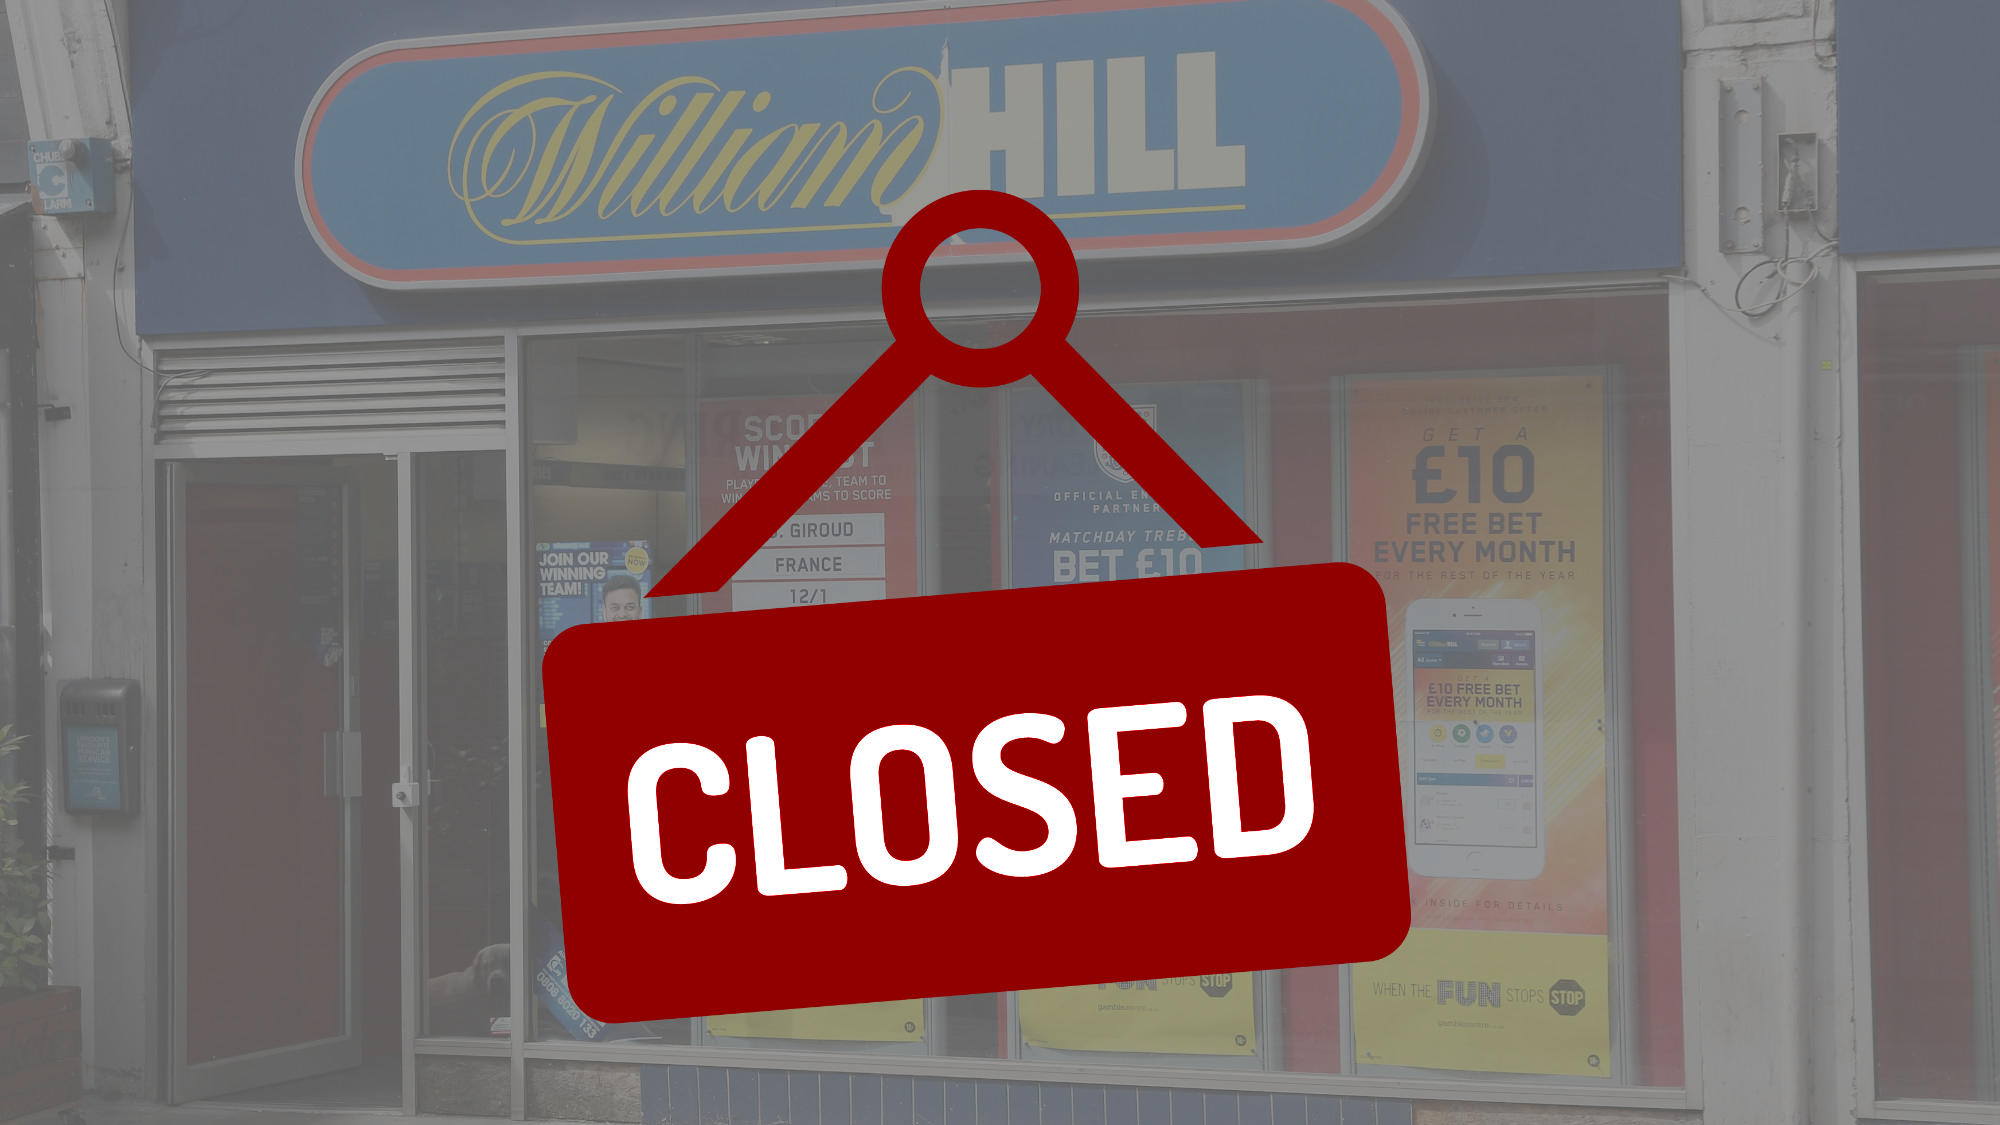 William Hill Closed